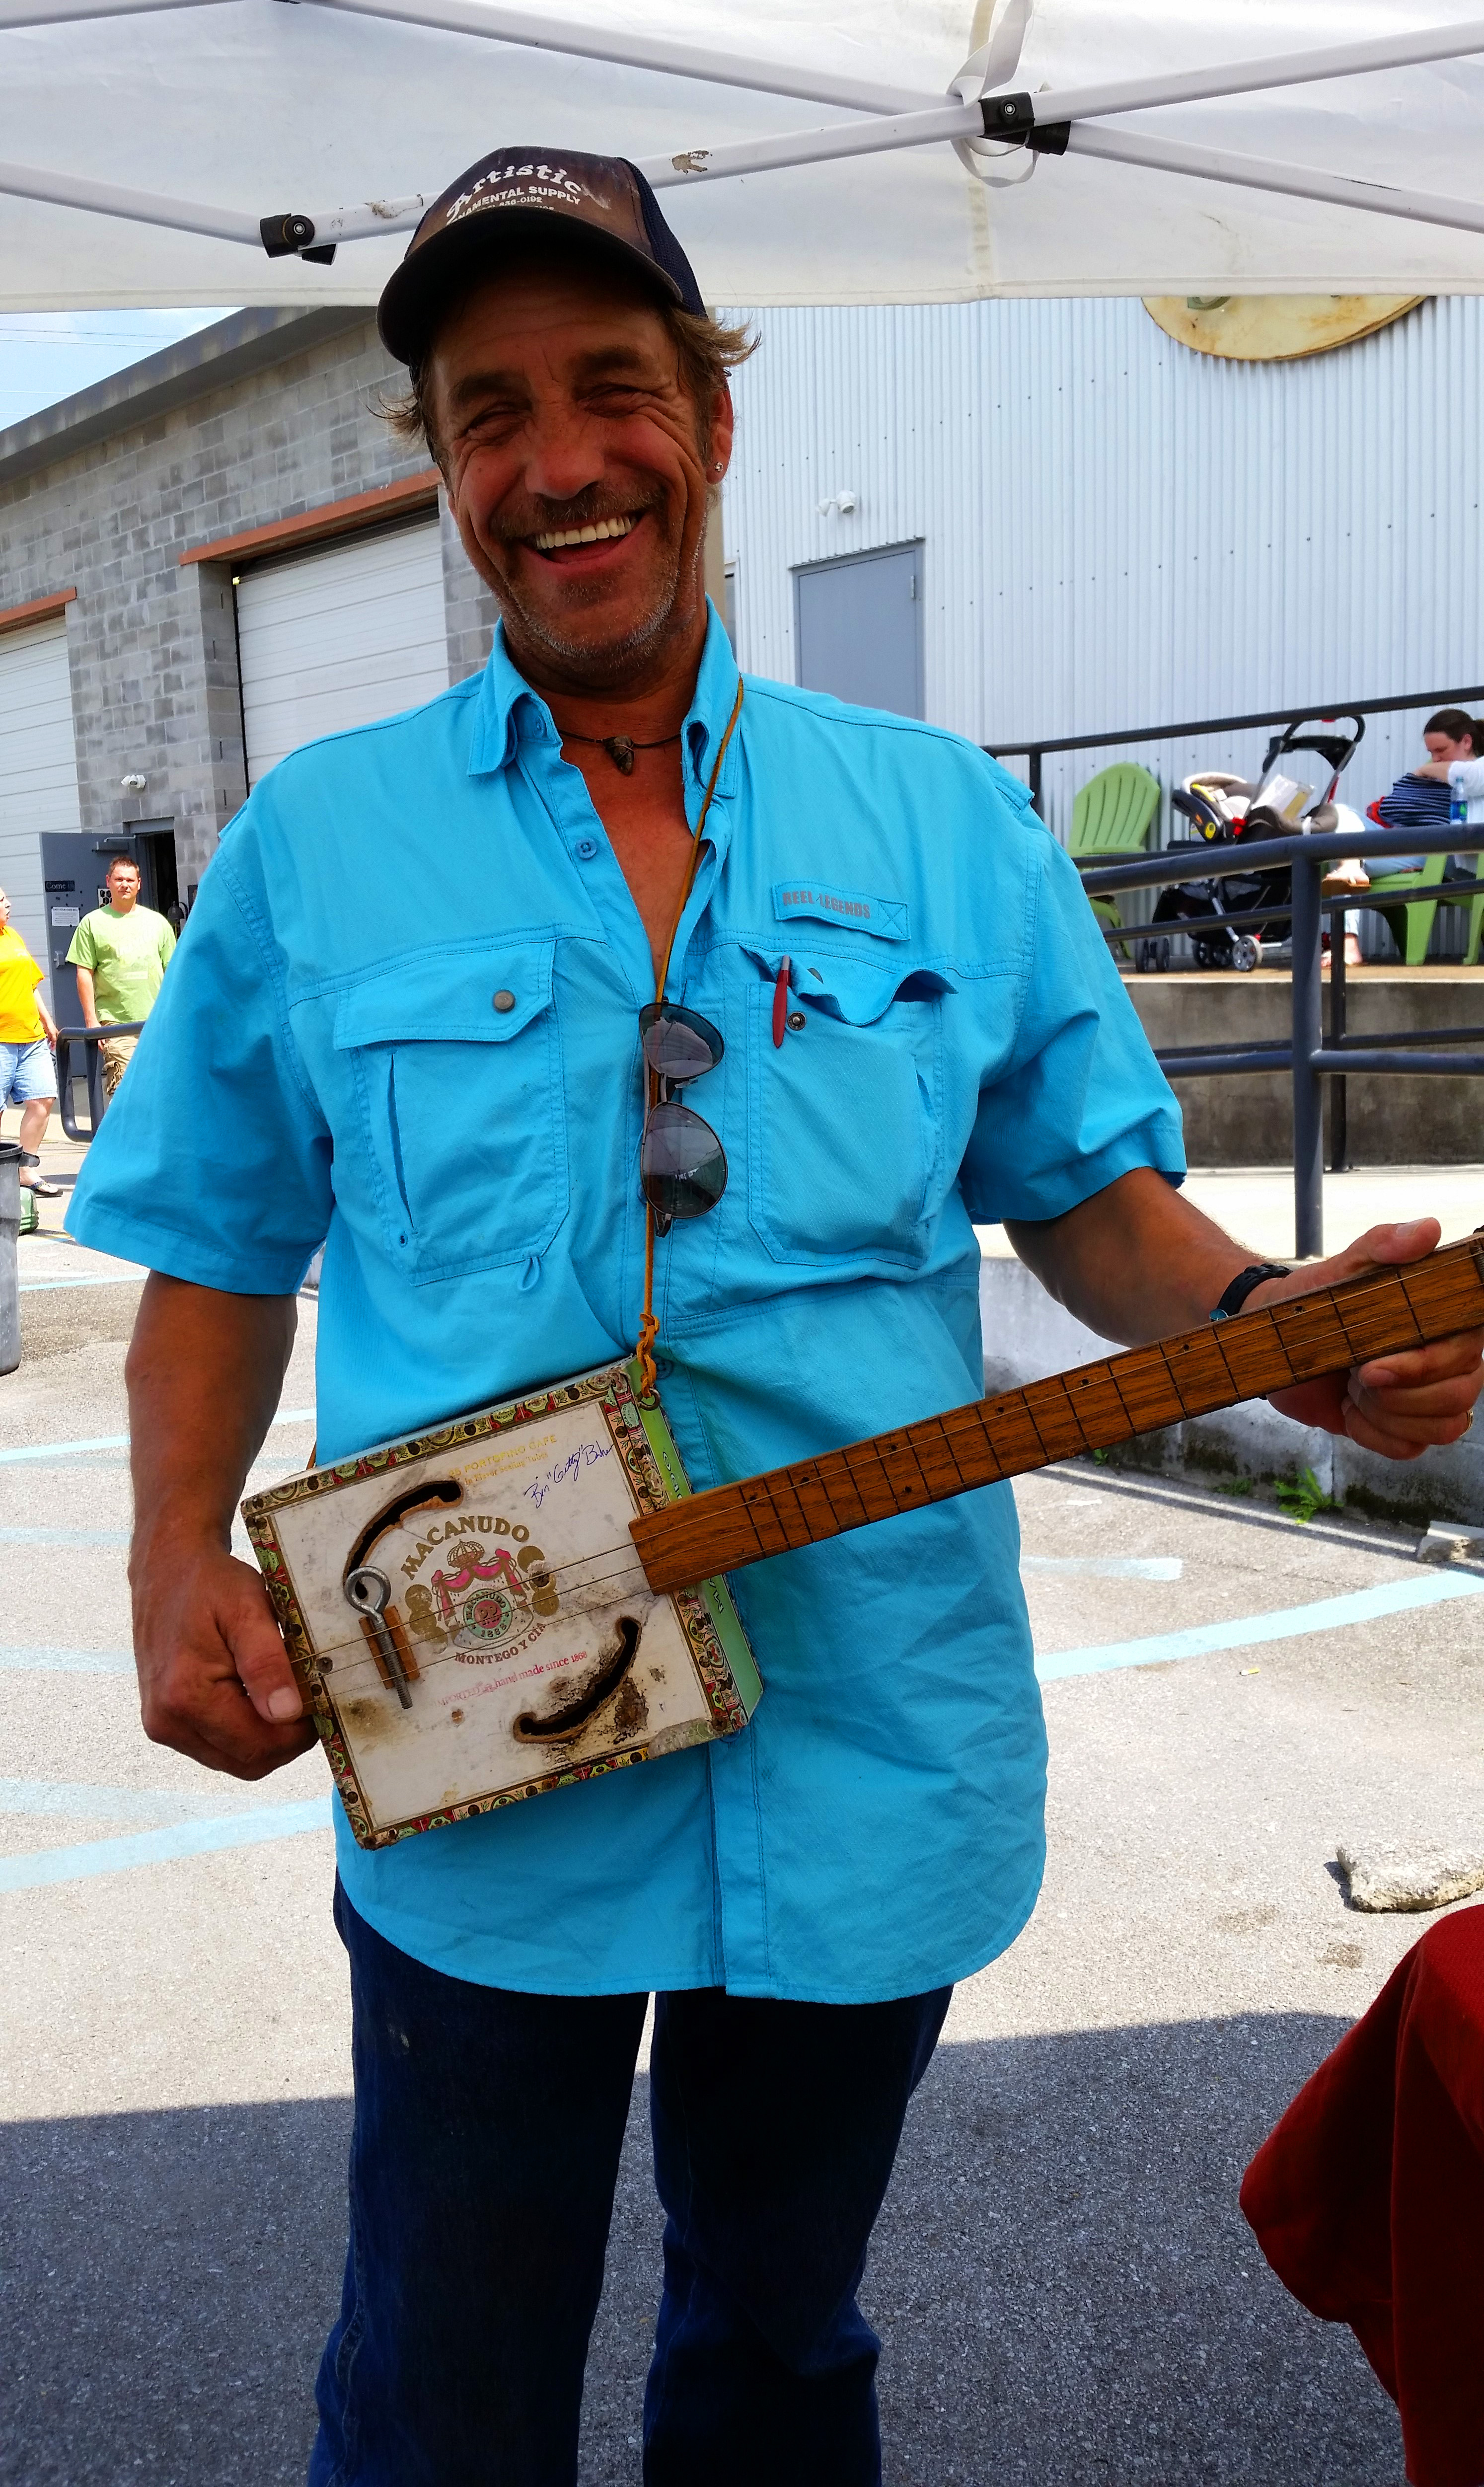 Eric Salhoff with his well-worn Cigar Box Guitar